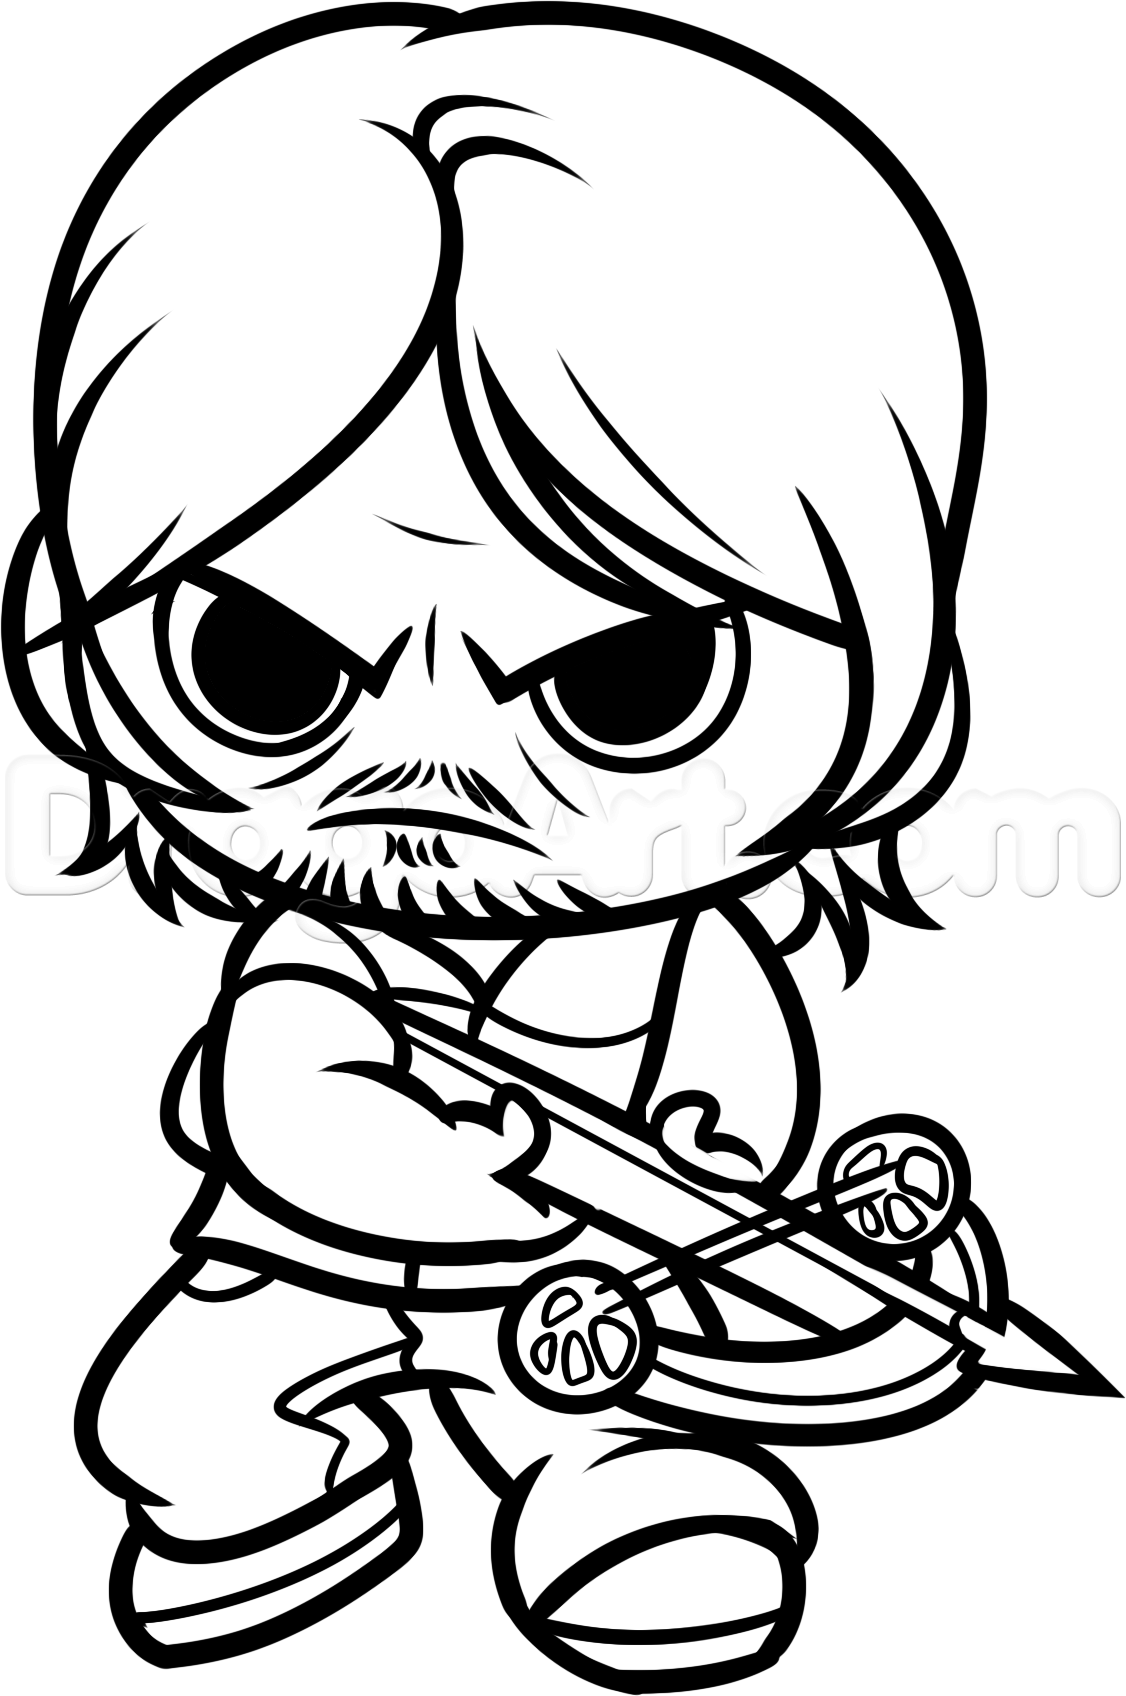 How To Draw Chibi Daryl by Dawn | Walking dead drawings, Chibi ...